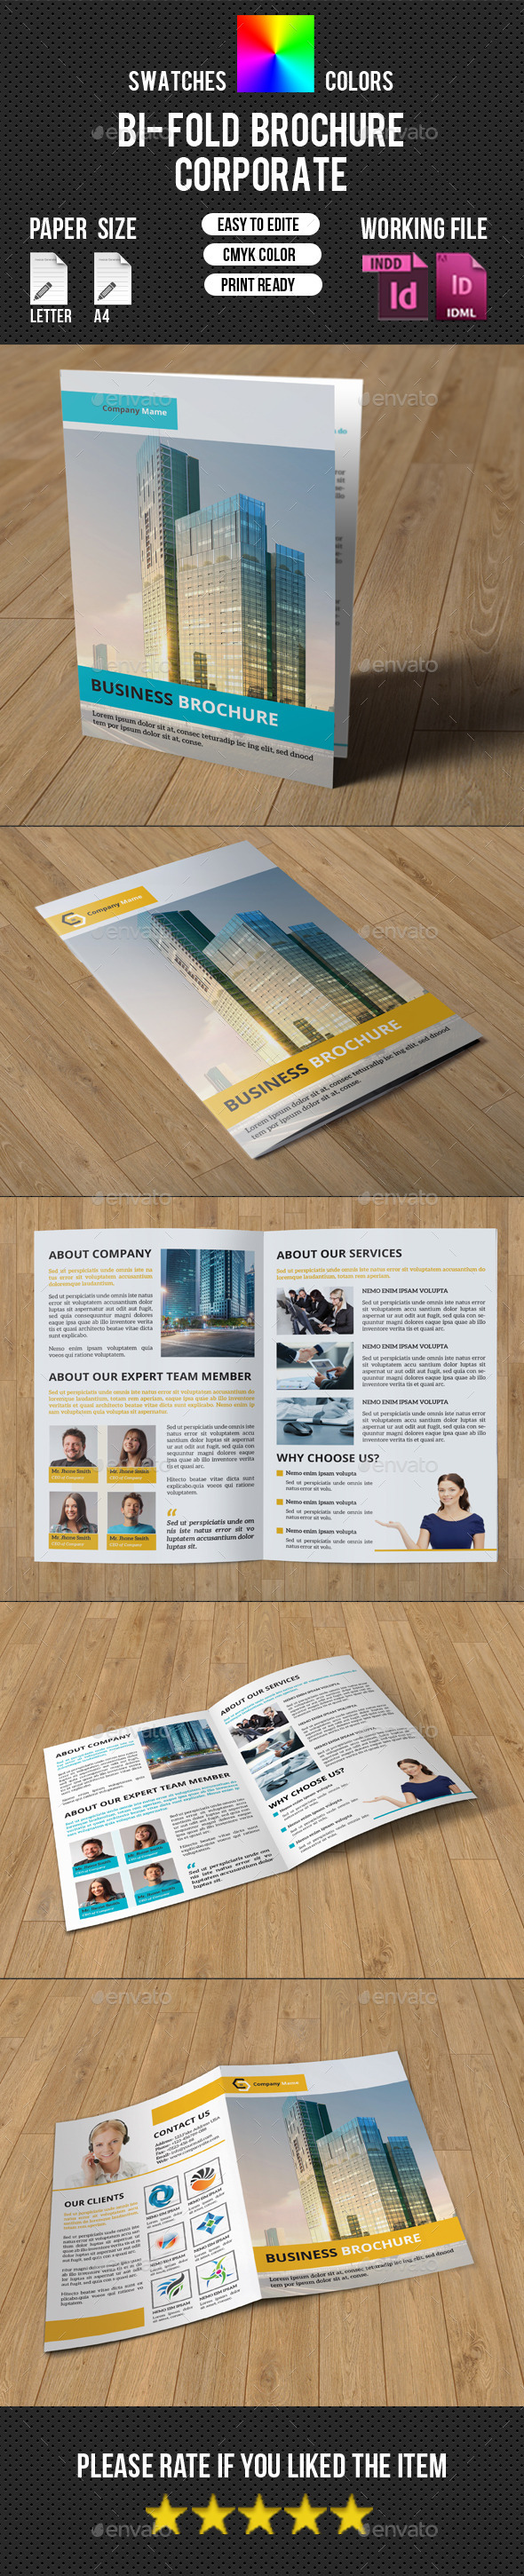 GraphicRiver Corporate 4 Page Brochure-V215 10602074